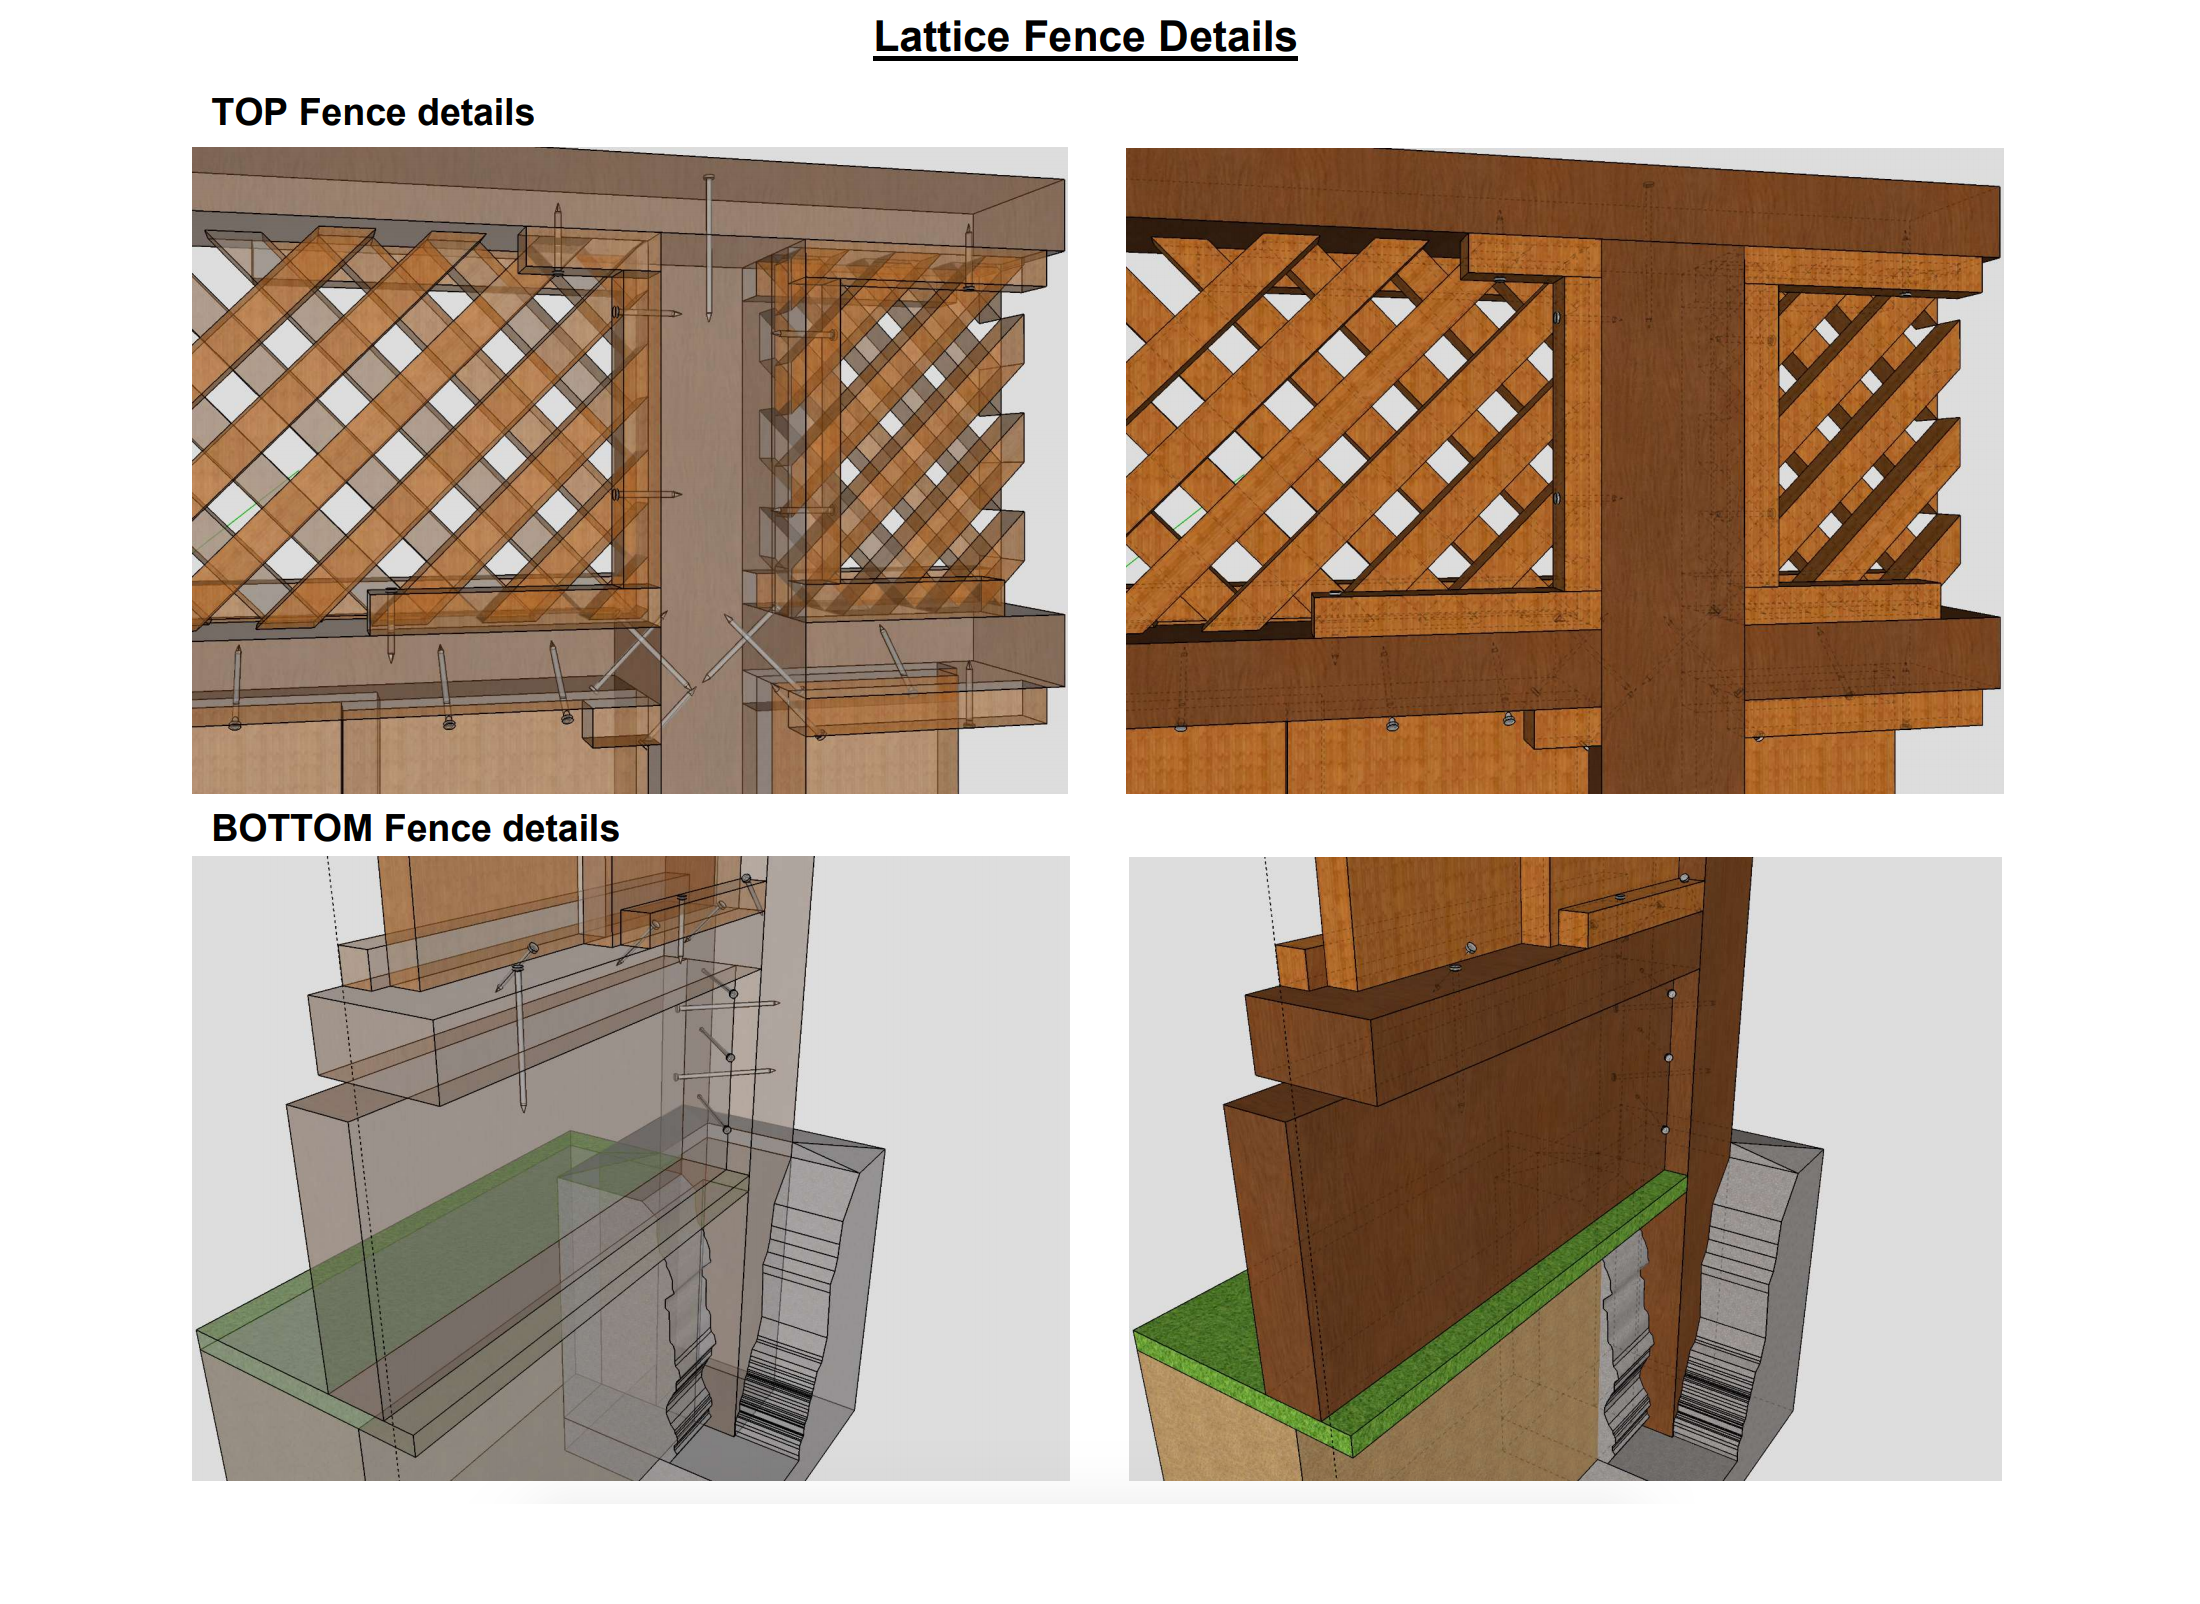 Lattice fence details